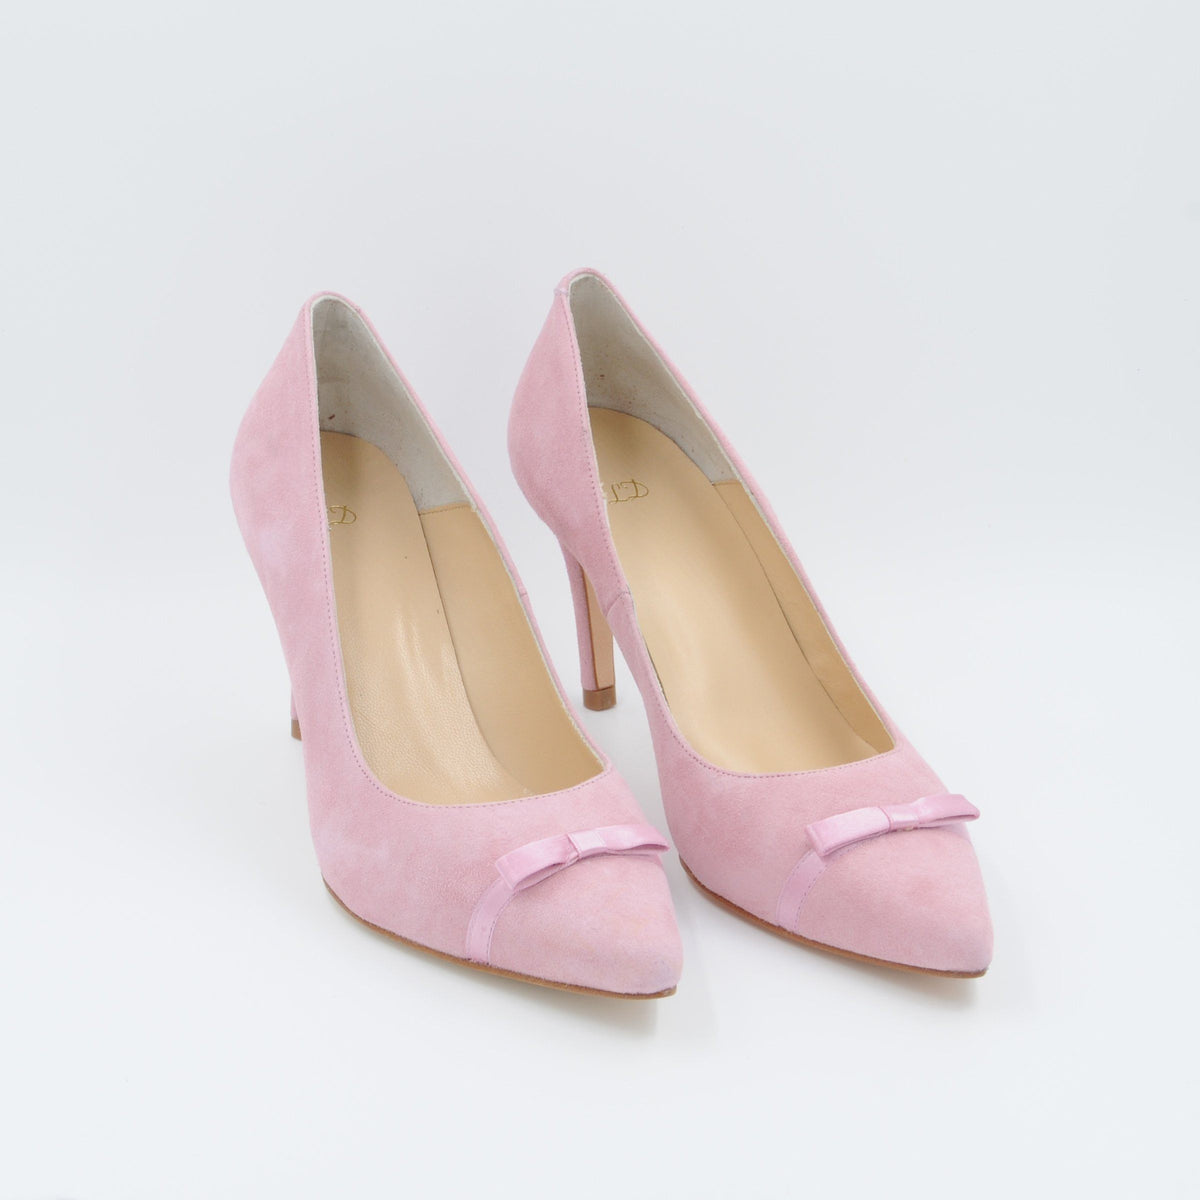 Lola Domecq Priscila In Pink Hand made suede heels